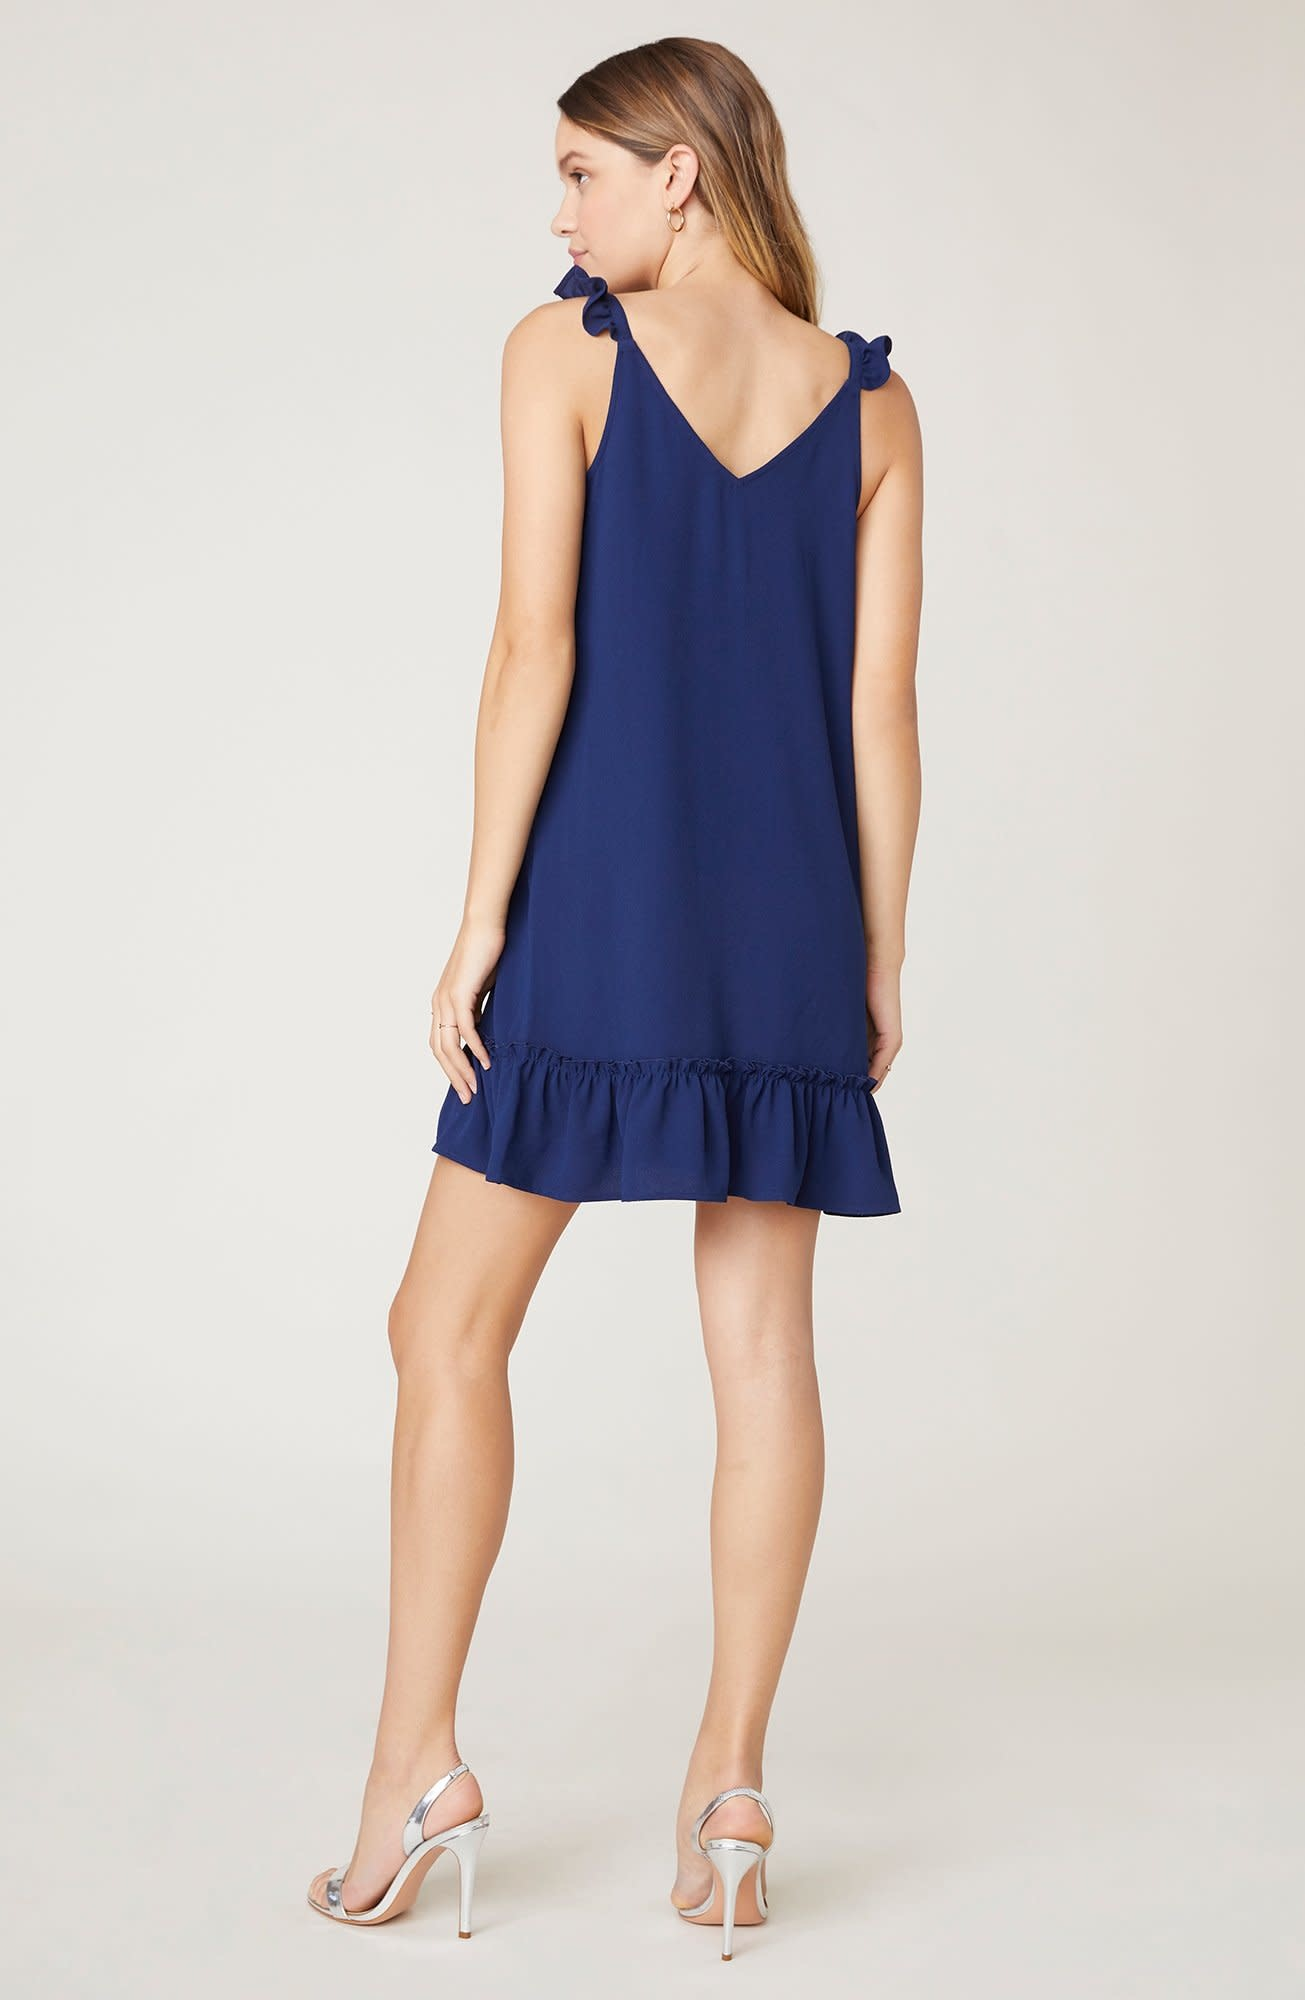 Jack by BB Dakota Shifted & Talented Navy Dress